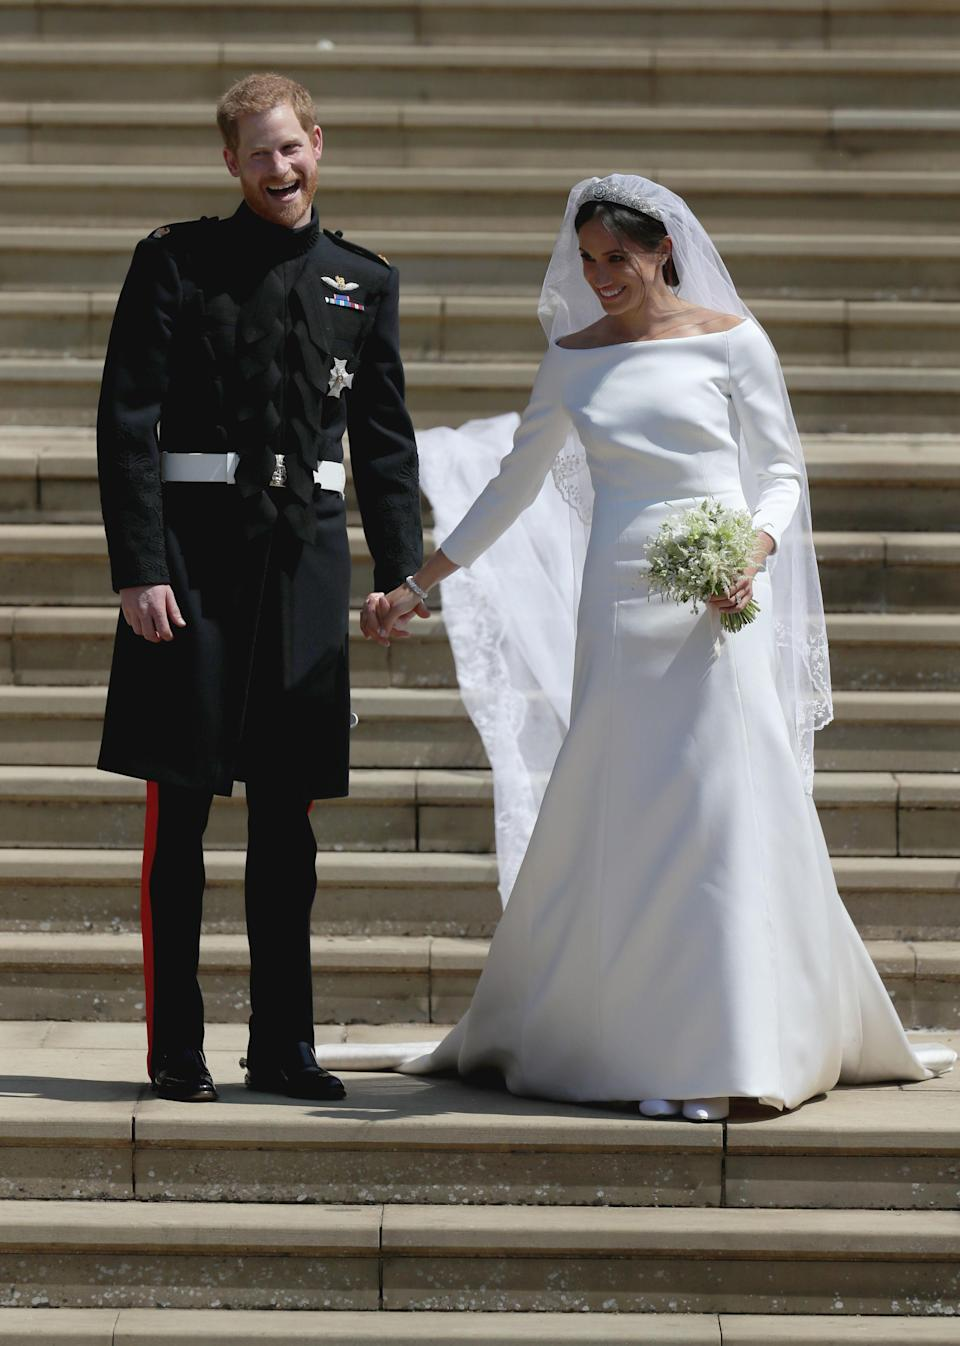 The Duchess of Sussex's wedding gown is estimated to have cost over £250,000